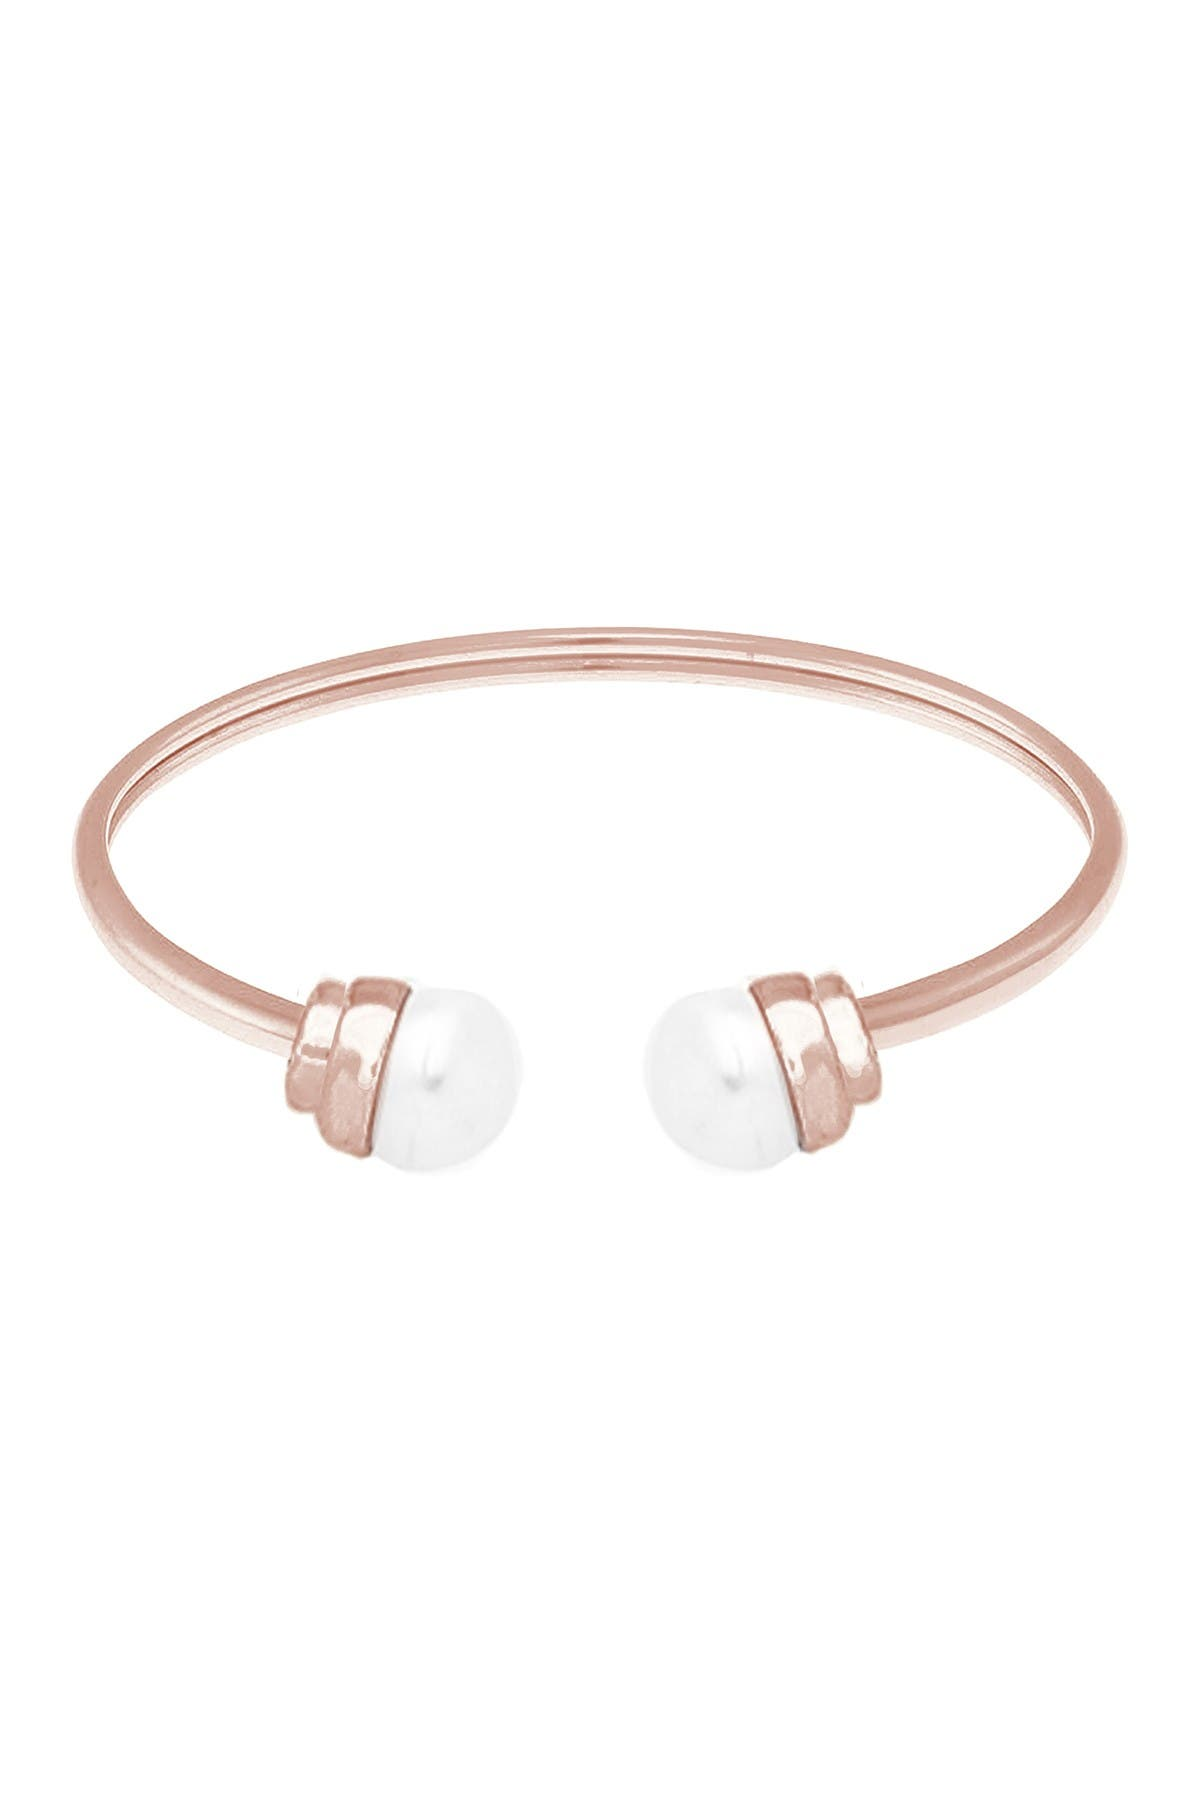 Image of Savvy Cie Cultured Freshwater 9-10mm Pearl Open Bangle Bracelet